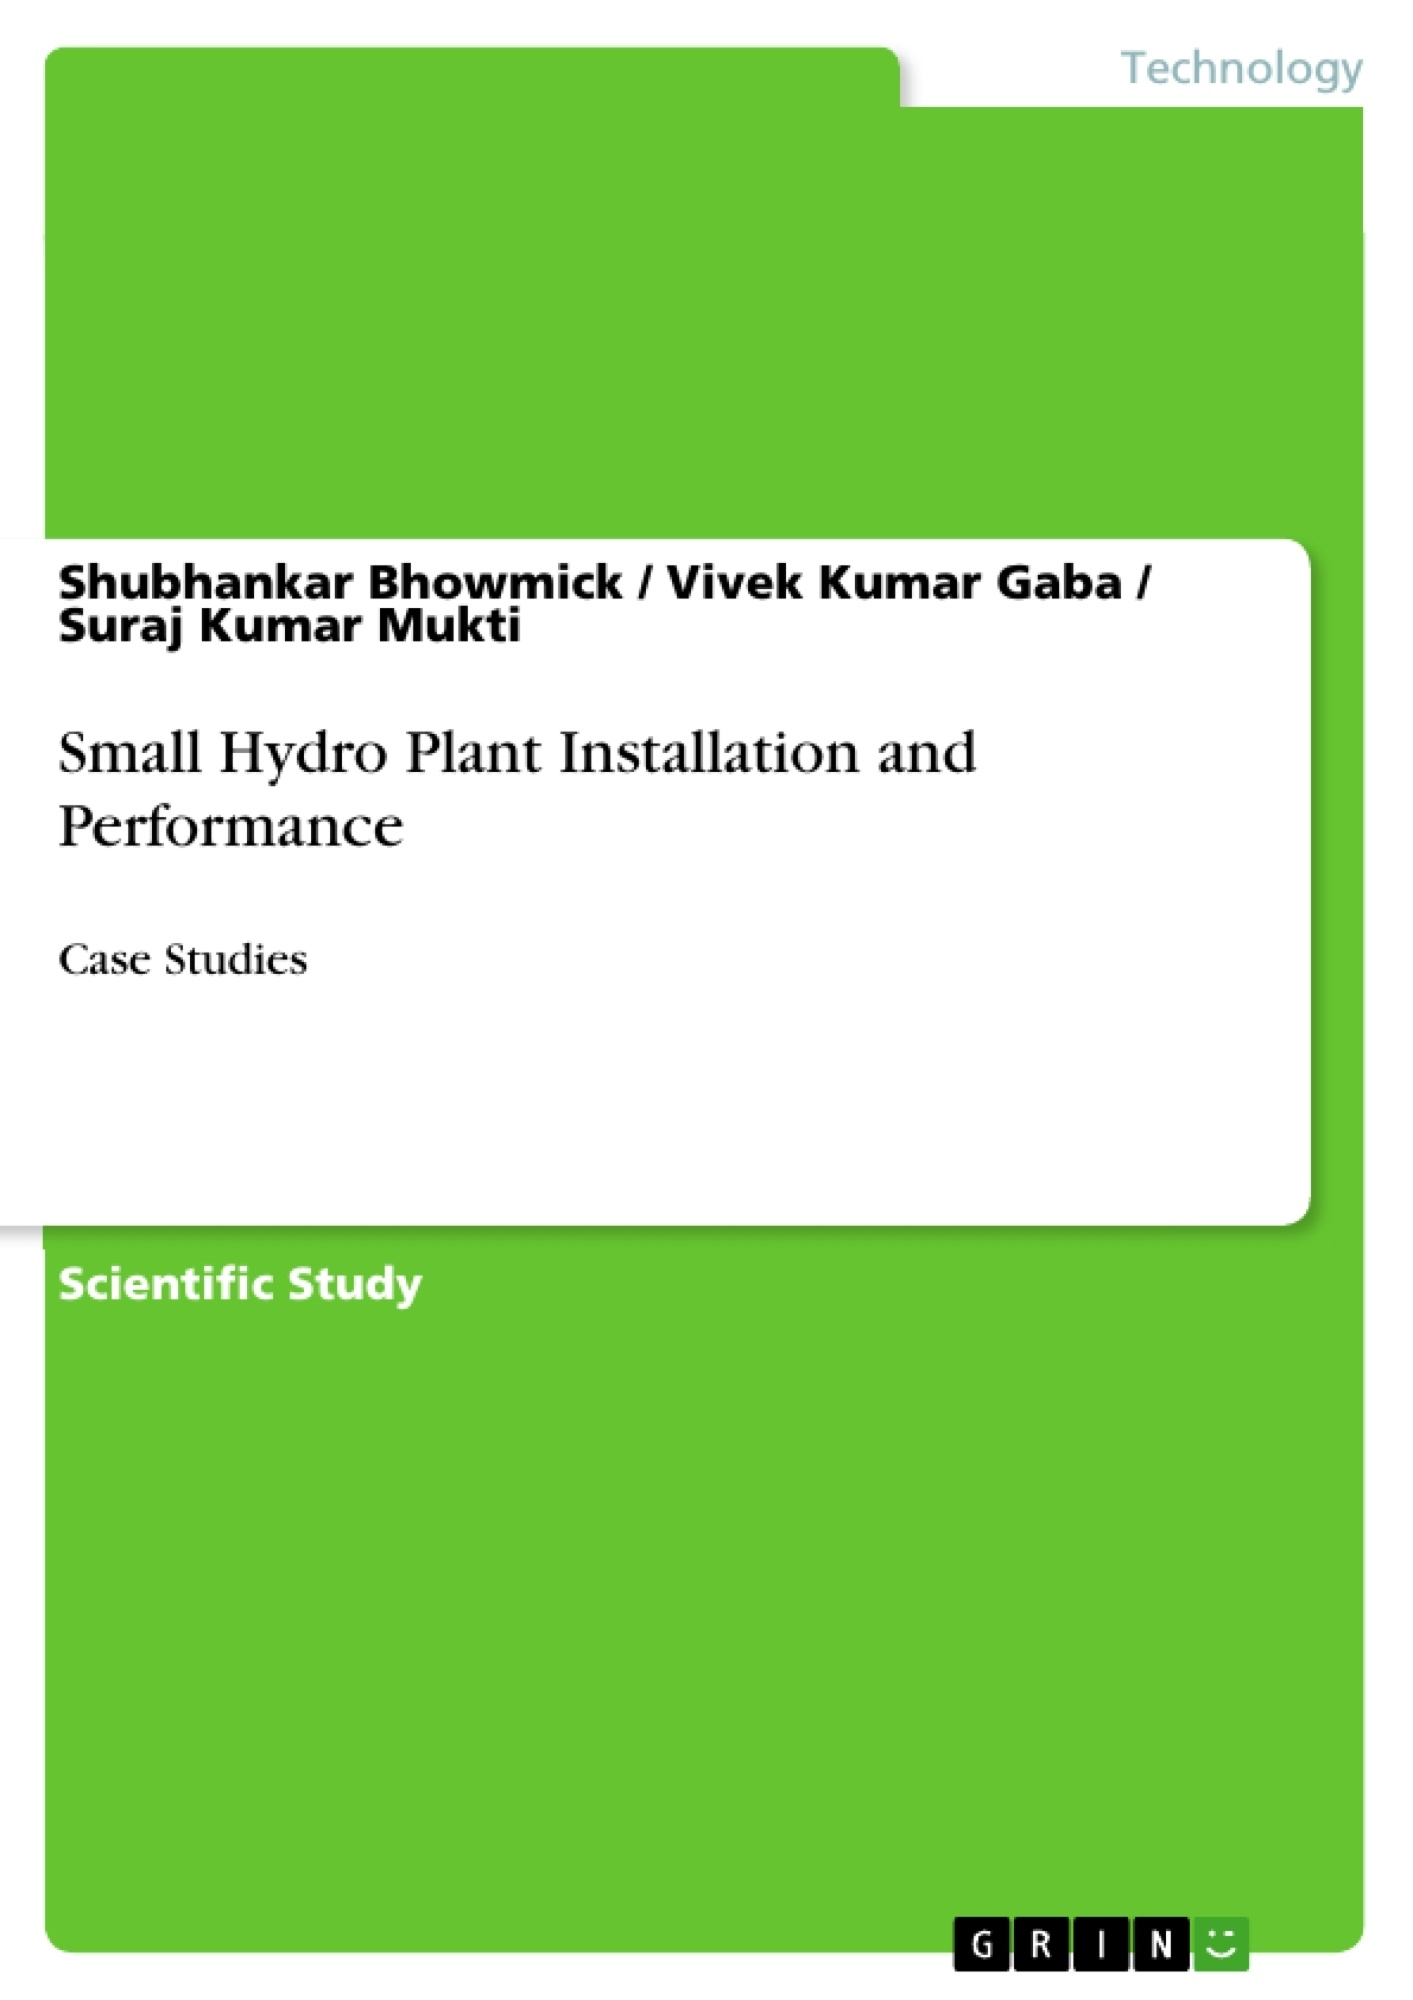 Title: Small Hydro Plant Installation and Performance